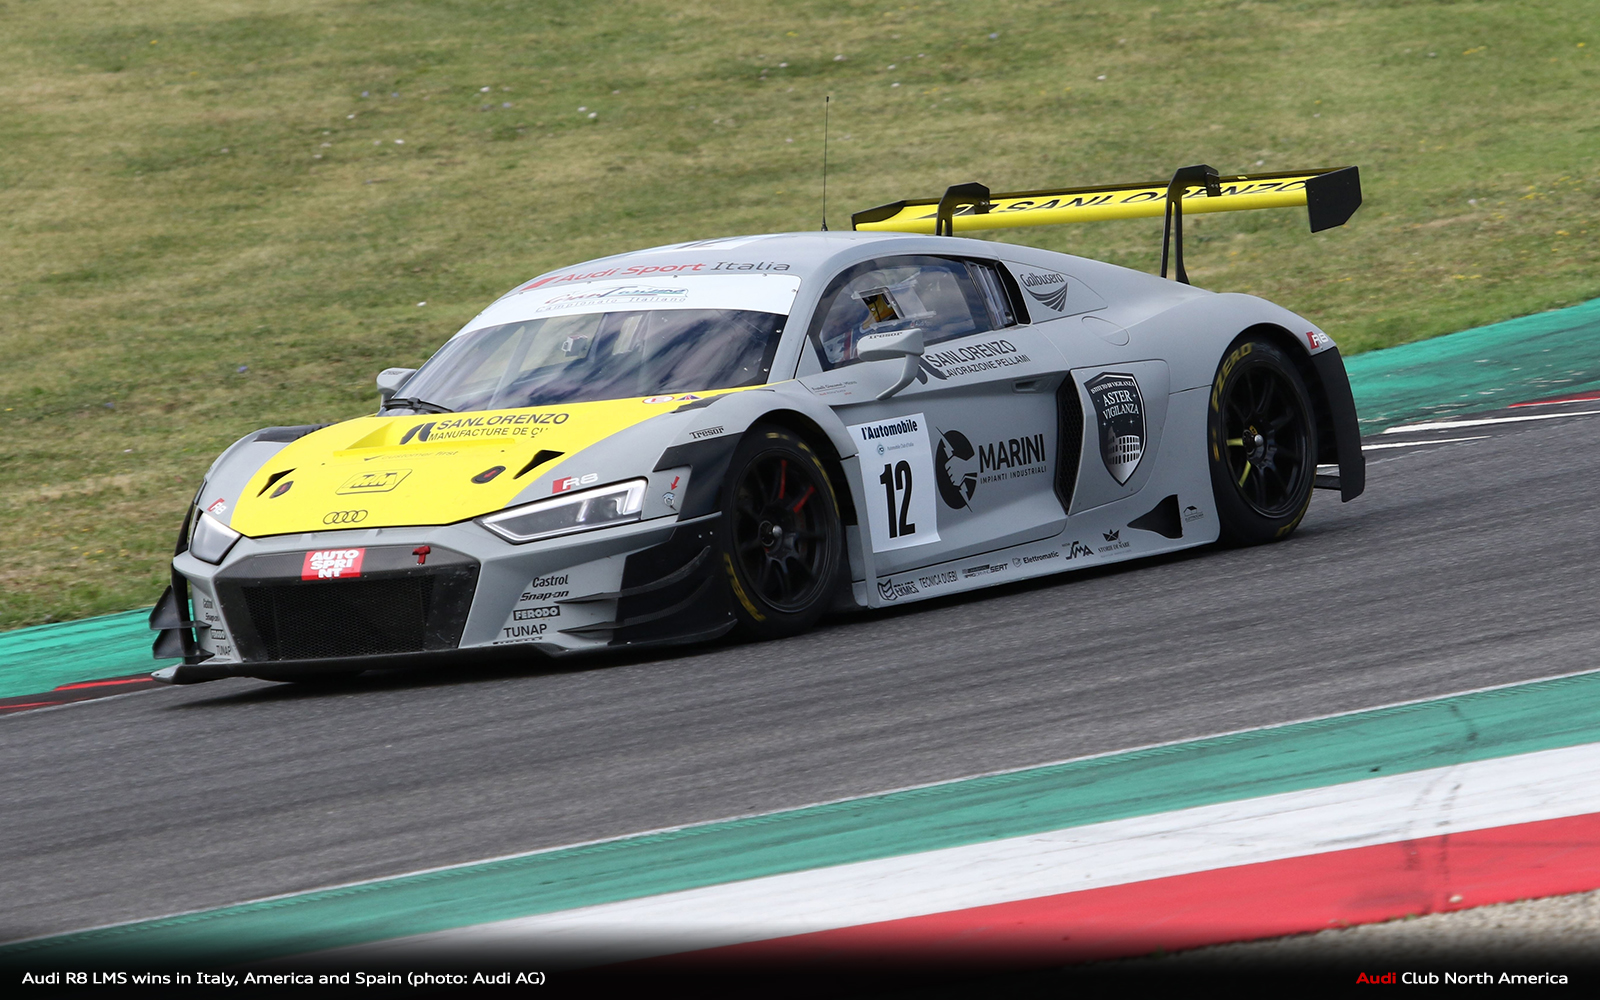 Audi R8 LMS Wins in Italy, America and Spain